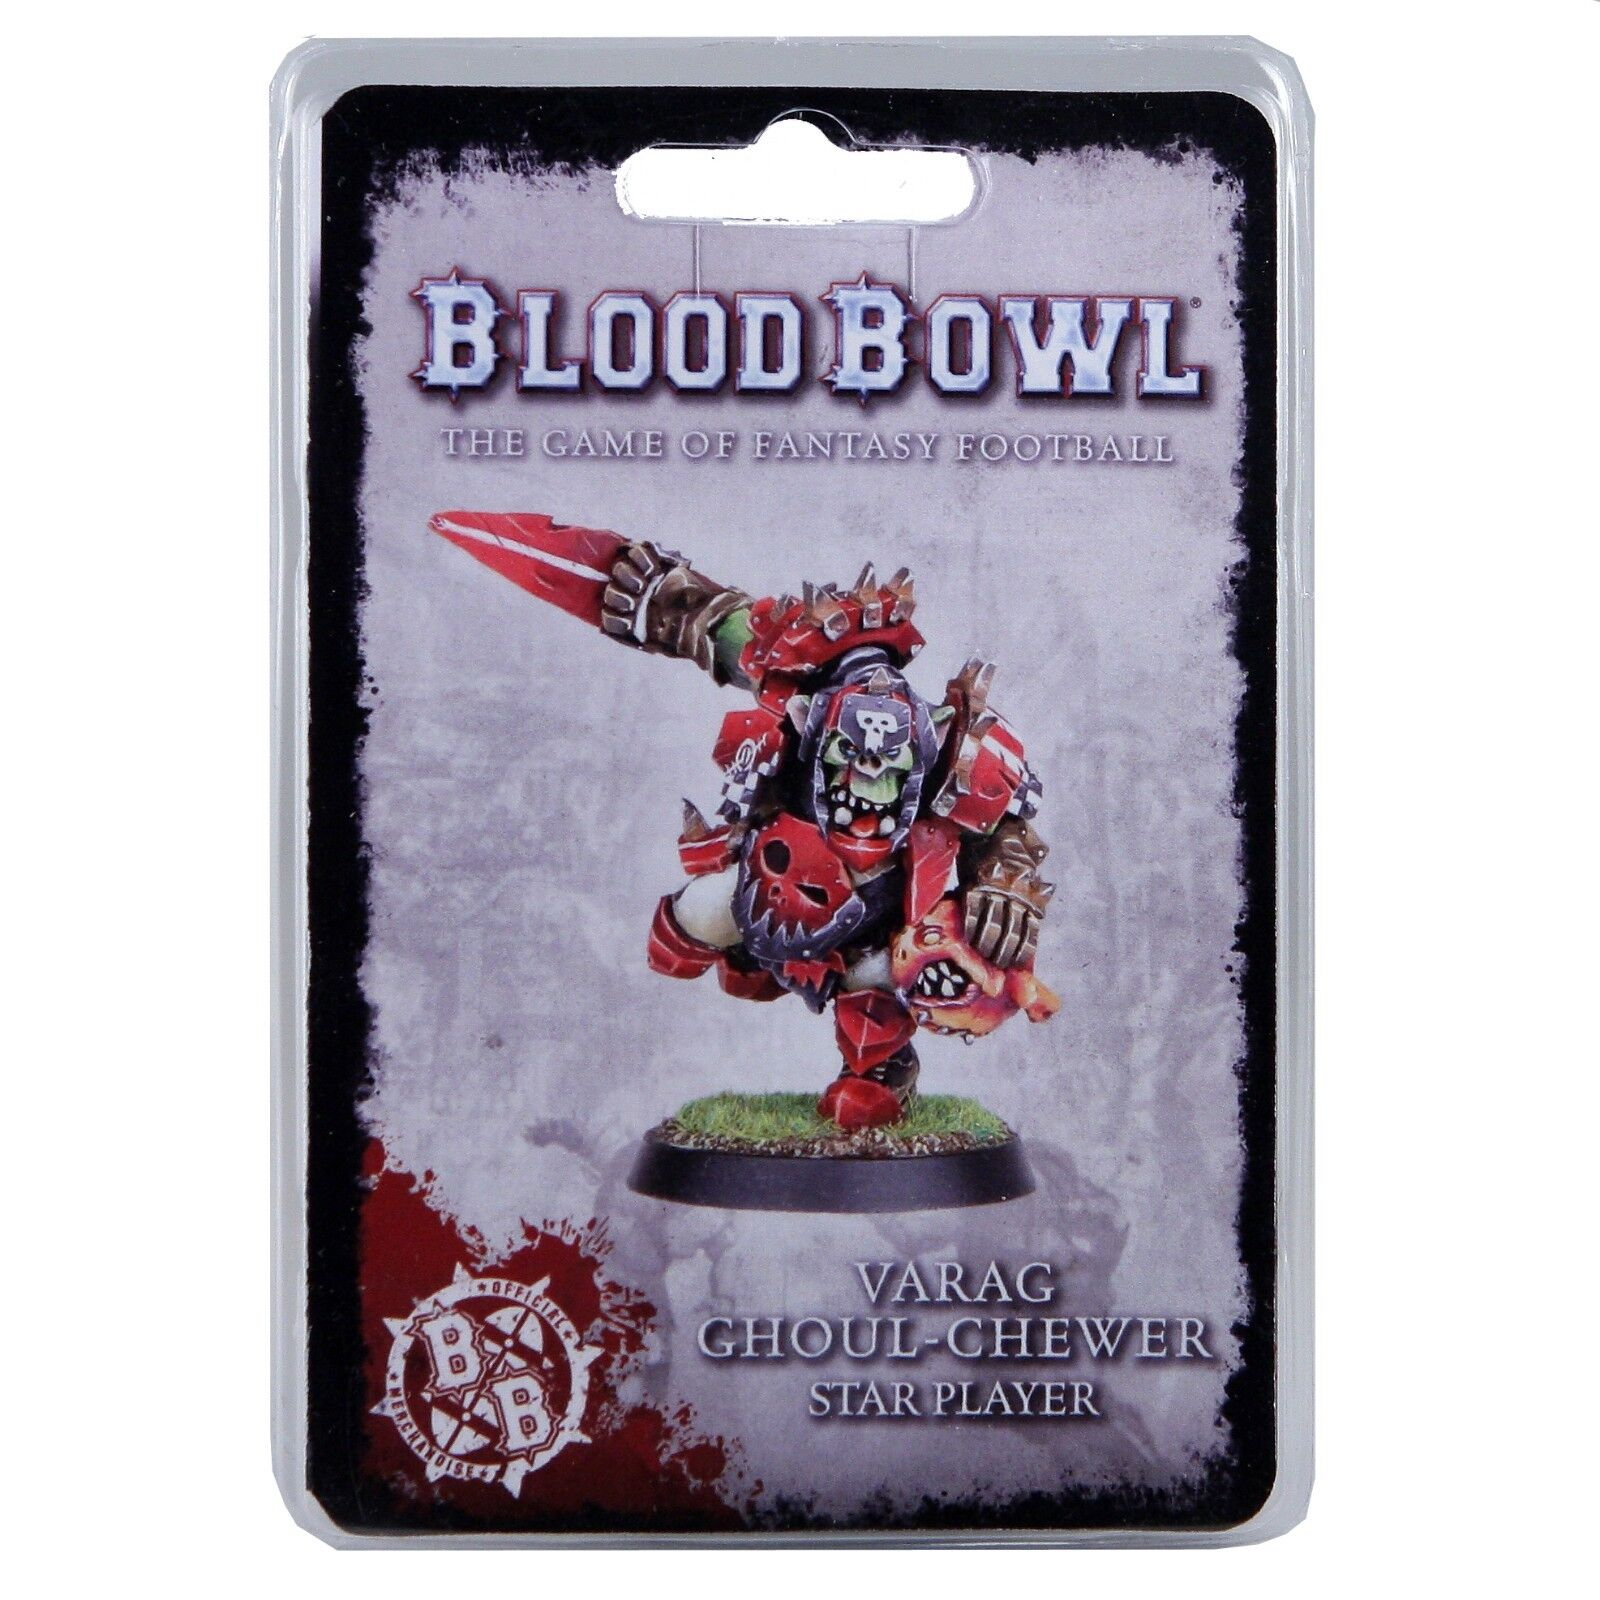 Blood Bowl Orc Star Player Varag Ghoul Chewer Fantasy Football